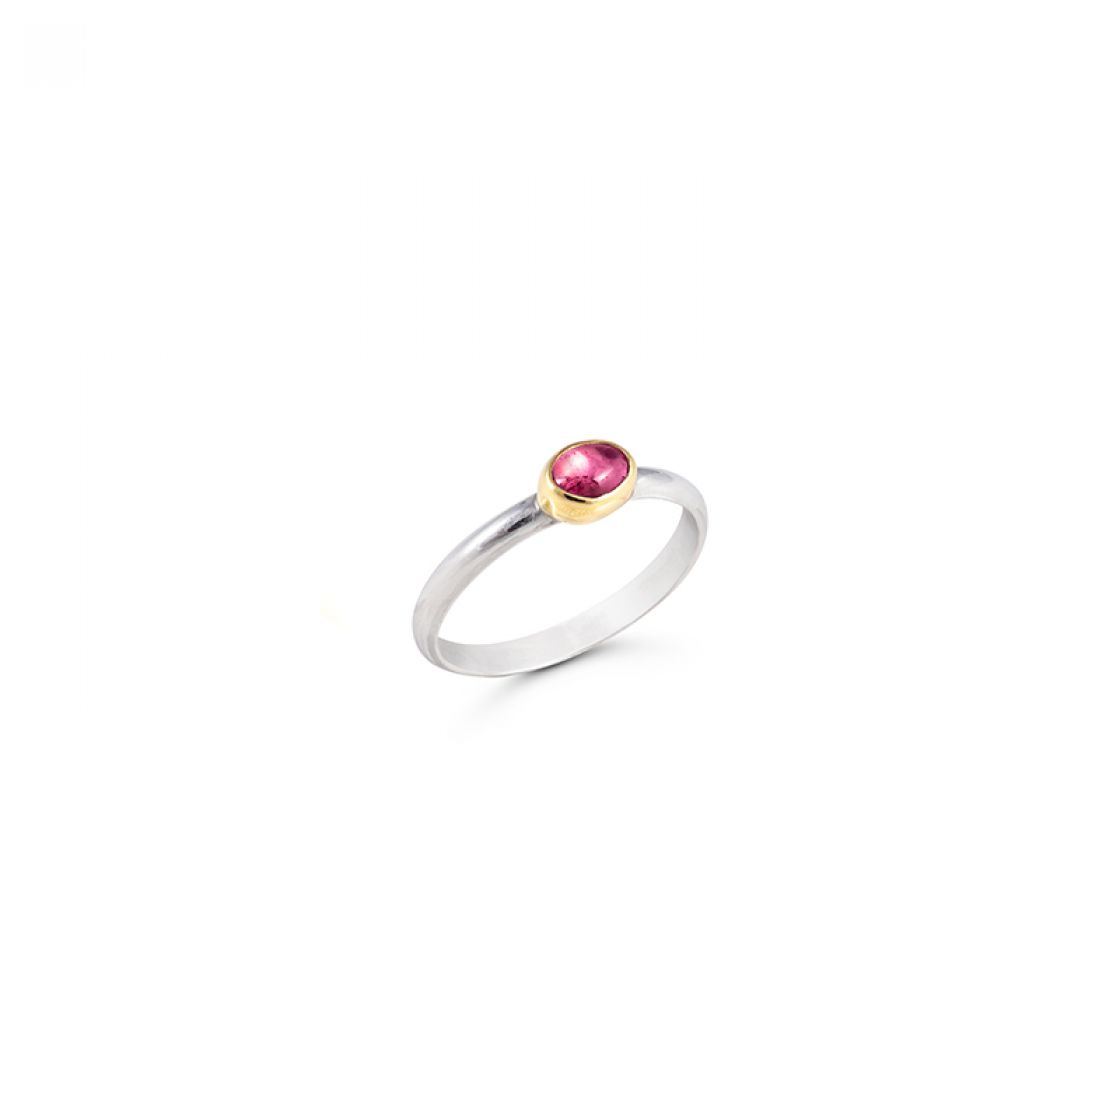 18kt gold bezel trace the shape of this cute oval tourmaline stone on a sterling silver band